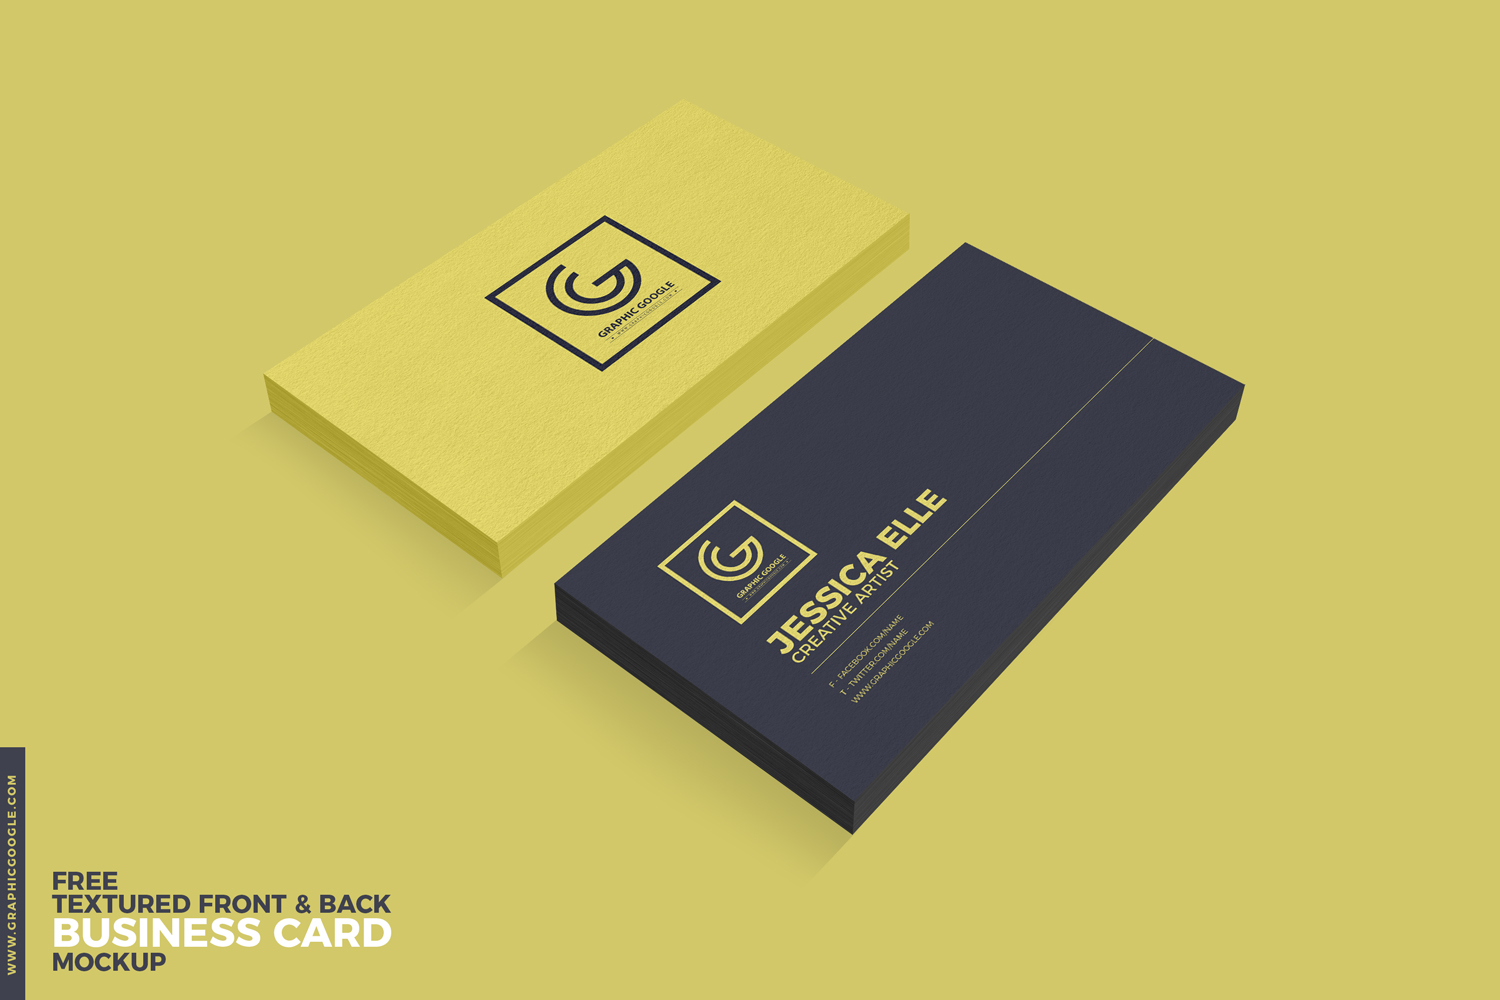 Free-Textured-Front-Back-Business-Card-Mockup.jpg